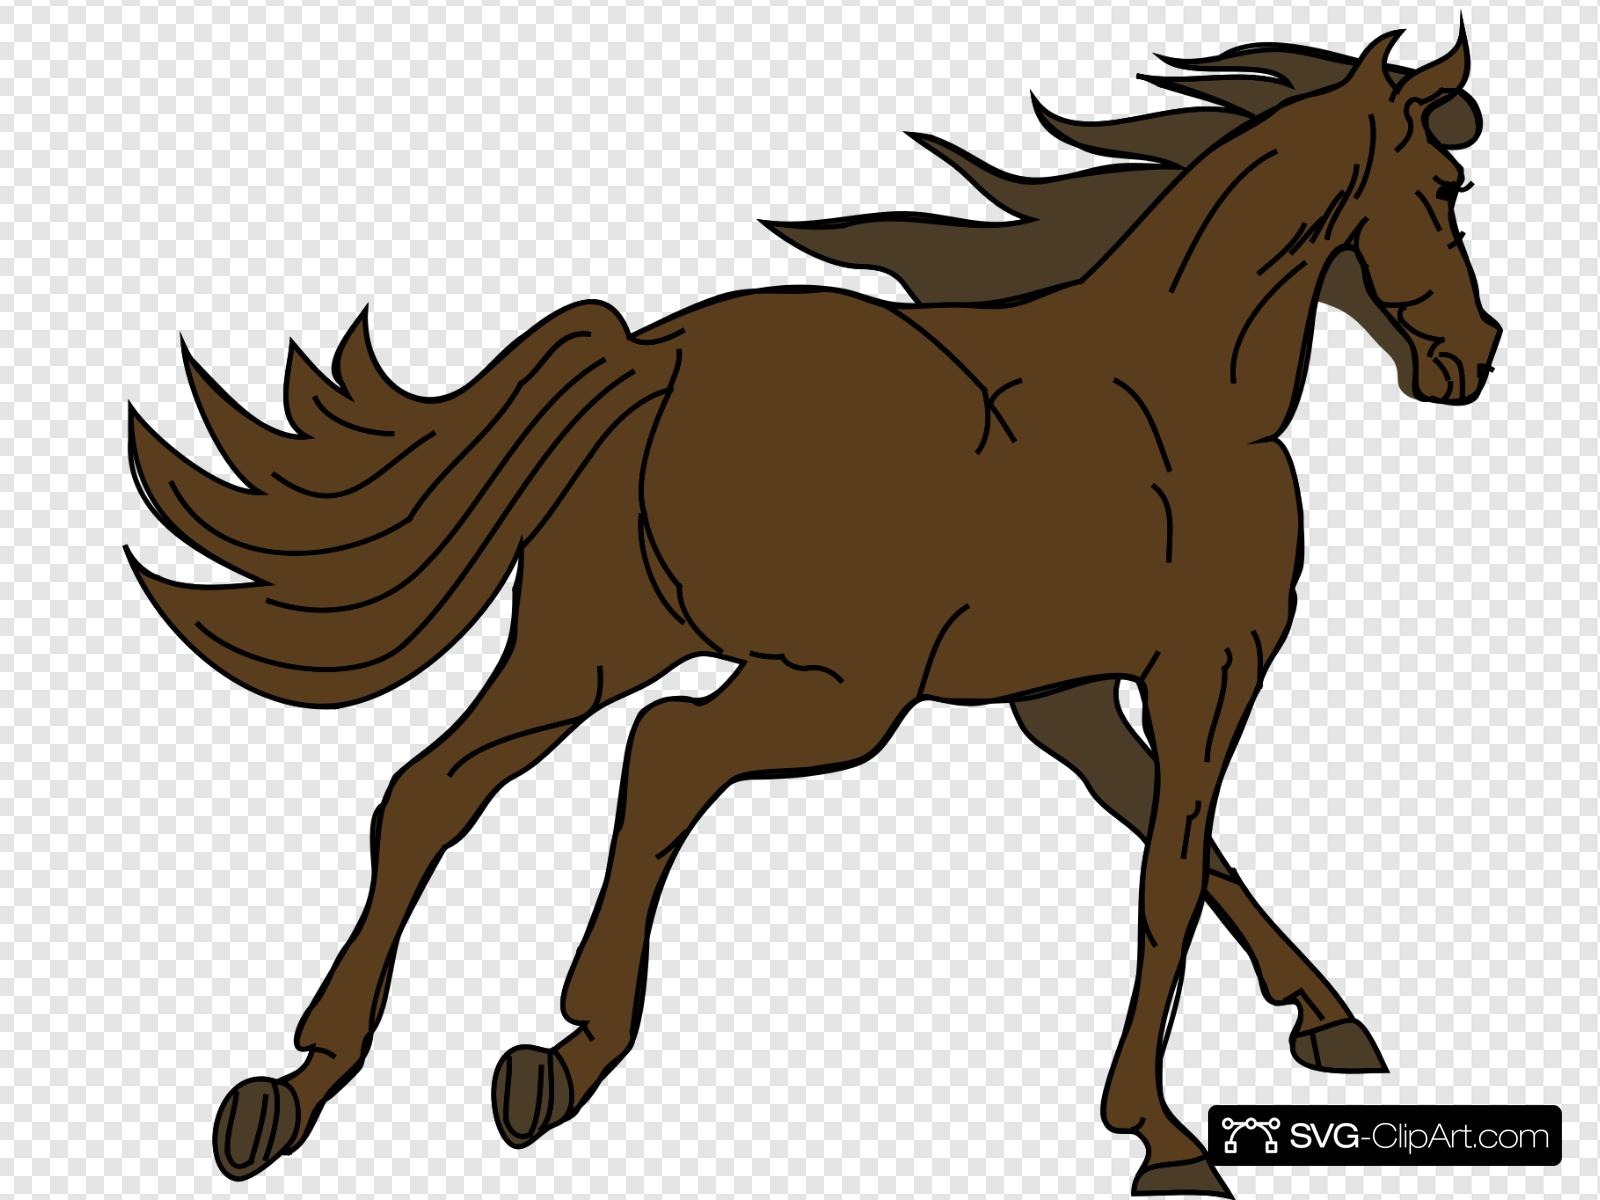 Nsl clipart picture Running Brown Horse Clip art, Icon and SVG - SVG Clipart picture